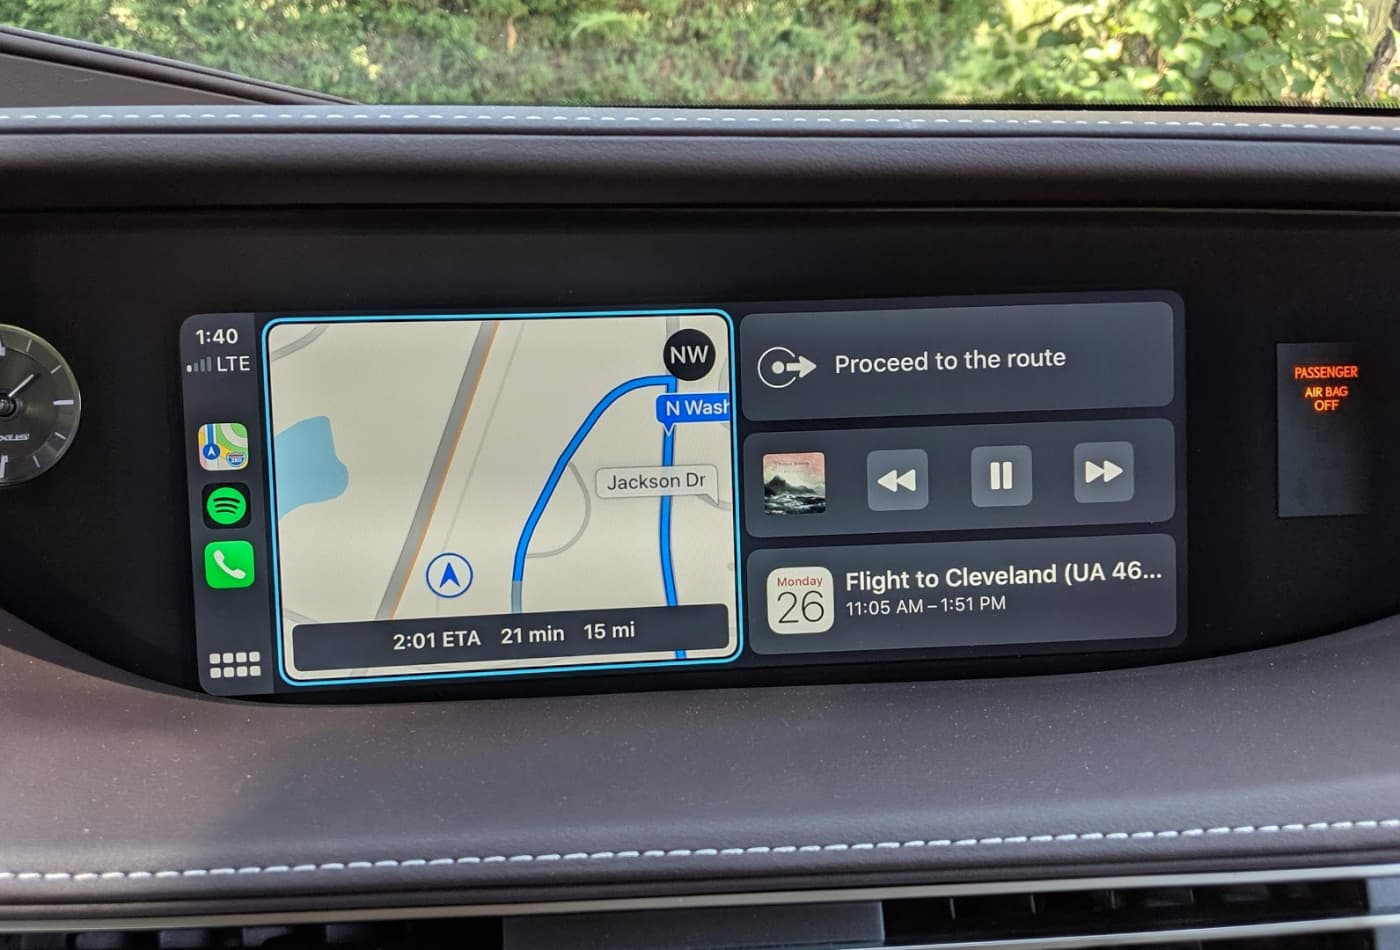 Apple's big iPhone update brings a lot of changes to CarPlay, here's a look at what's new